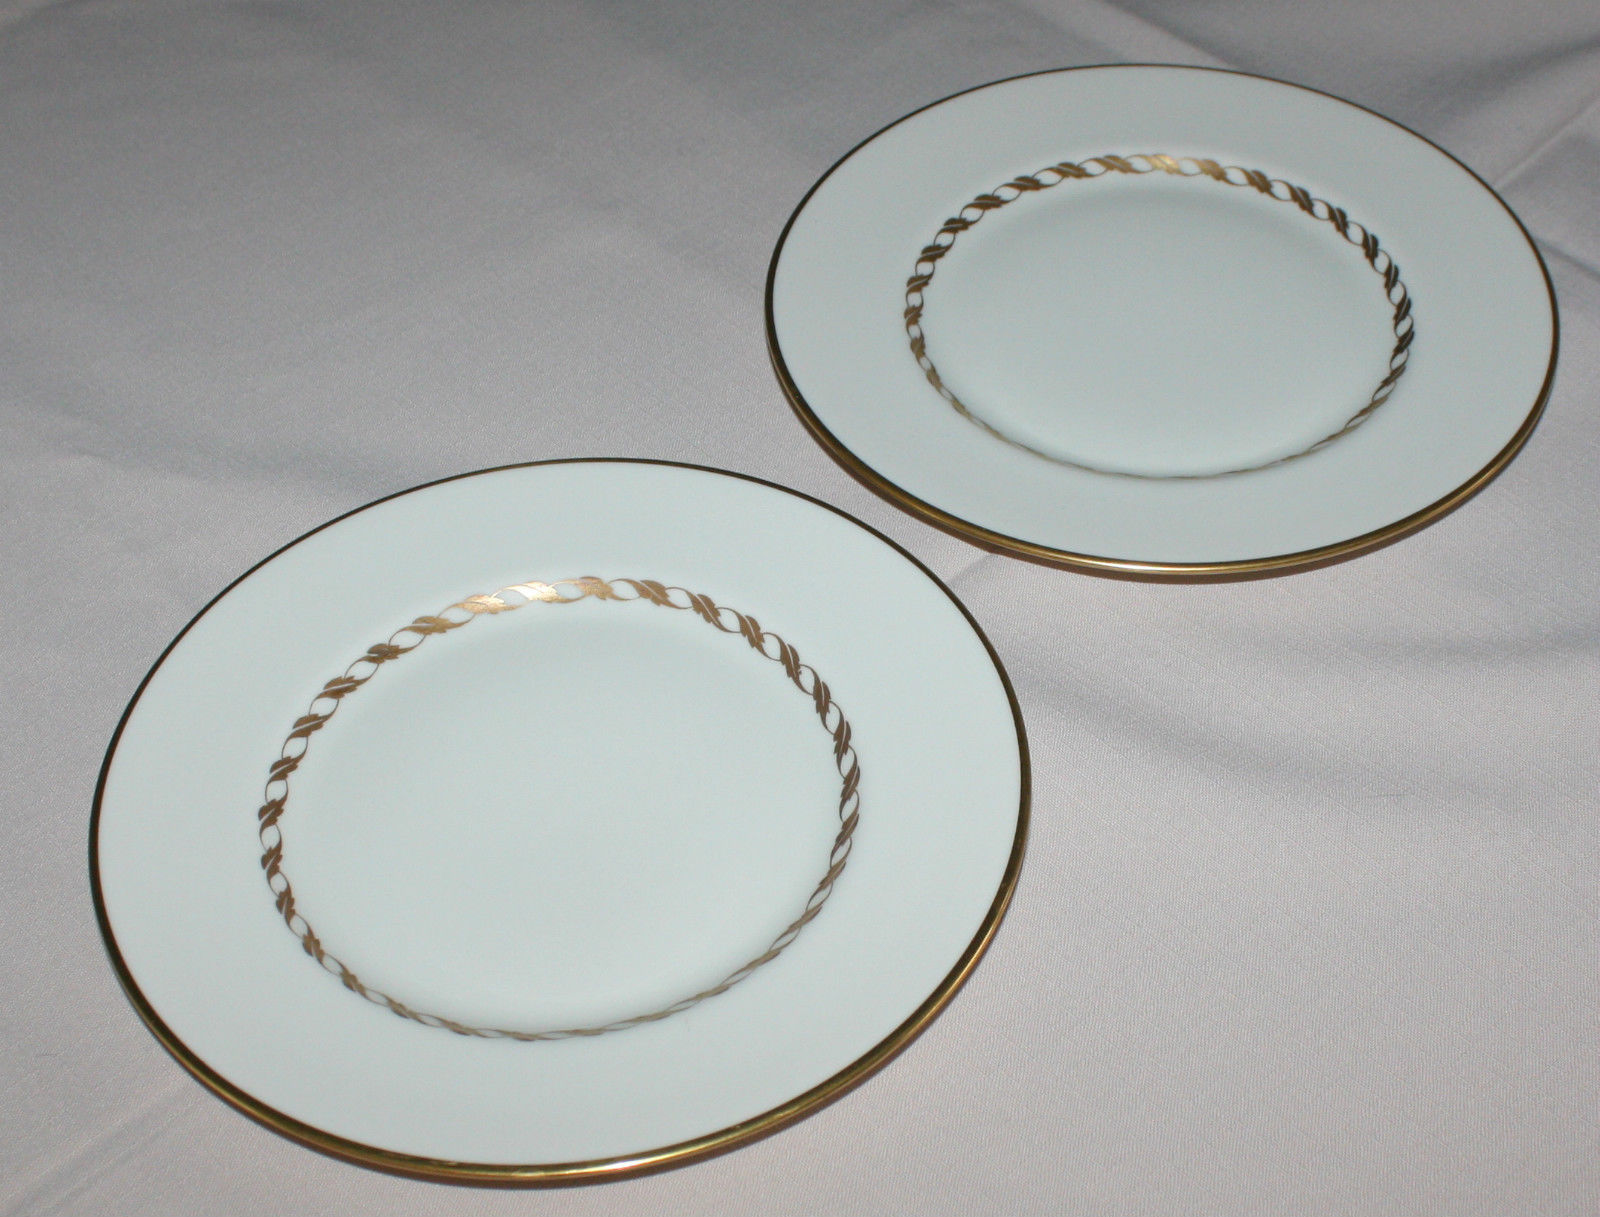 2 Salad Plates Franciscan California Del Monte Ivory Gold Rope Braid Trim